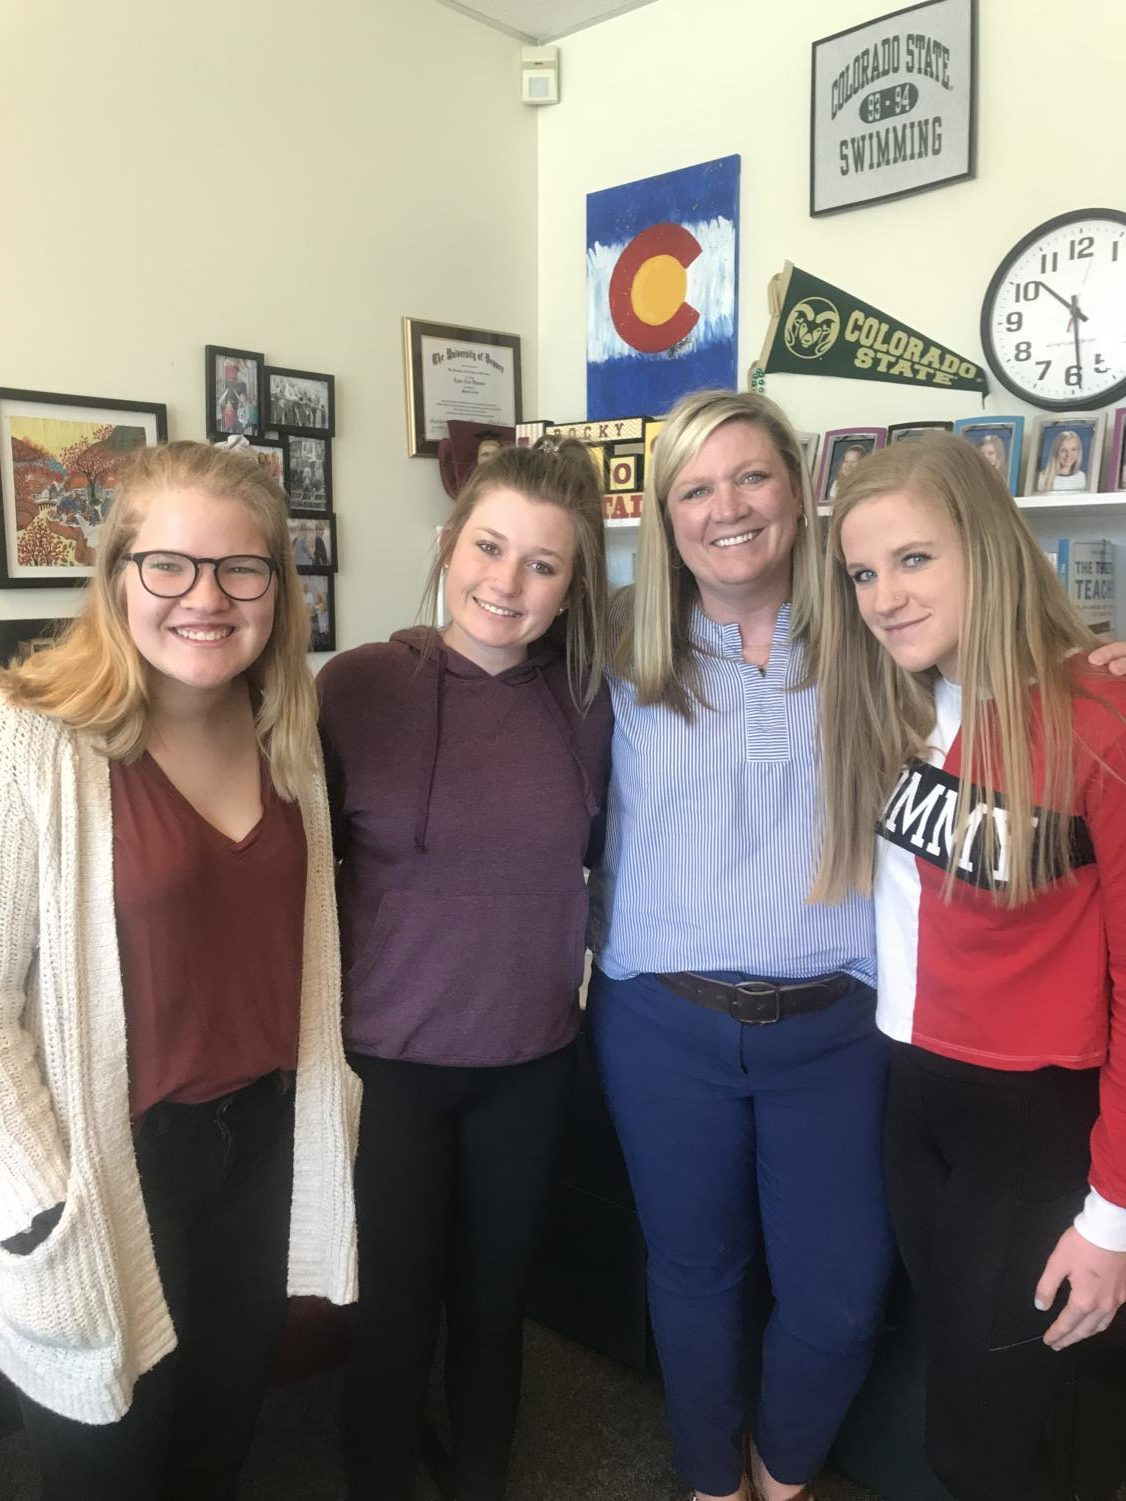 Ms.+Nickel%2C+one+of+the+assistant+principals%2C+has+three+of+her+seven+daughters+at+Rocky.+The+oldest%2C+senior+Katie+Thomas%2C+loves+all+the+free+food+in+the+office+and+the+fact+that+her+mom+saves+some+for+her.+Katie%E2%80%99s+sophomore+sisters+Avery+and+Elliana+like+that+when+they+forget+to+get+their++permission+slip+signed%2C+they+can+just+go+see+her%2C+and+that+they+can+talk+to+her+whenever+they+want.+Avery+and+Katie+both+hate+the+fact+that+their+mom+calls+them+by+their+childhood+nicknames.+When+it+comes+to+Elliana%2C+she+is+not+a+fan+that+kids+put+down+her+achievements.+%E2%80%9CA+lot+of+people+told+me+I+only+got+into+Peers+because+of+my+mom%2C+instead+of+just+being+happy+for+me.%E2%80%9D